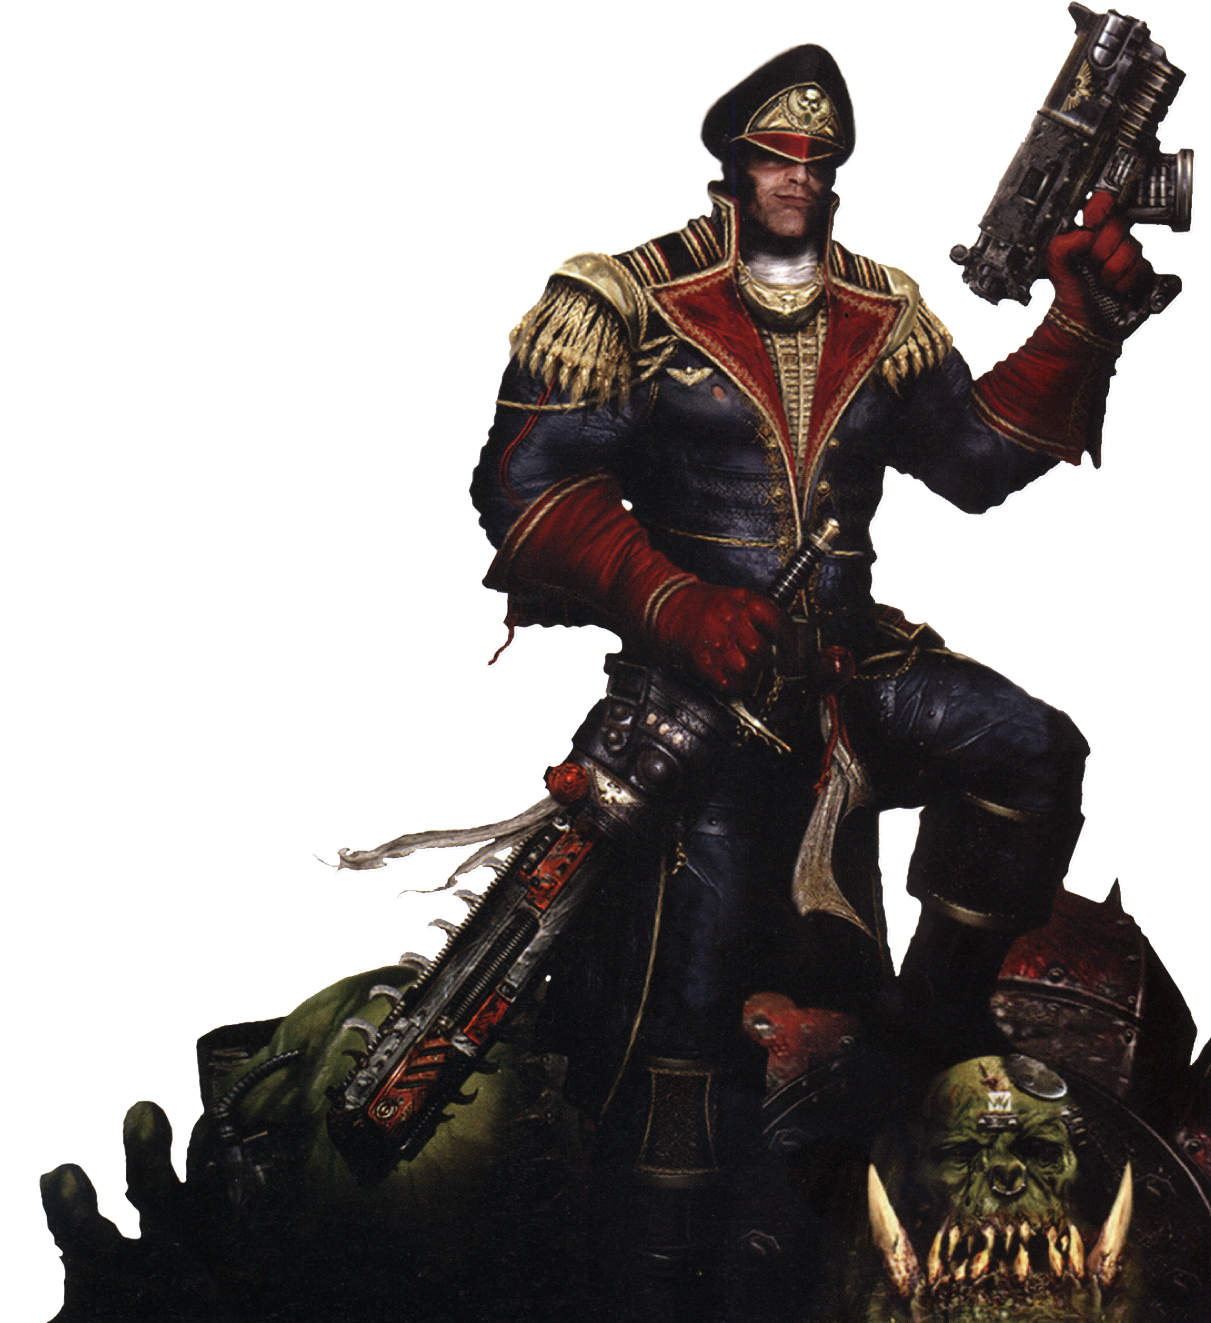 Warhammer 40k D&D 5E – Assault Space Marines and Imperial Commissars